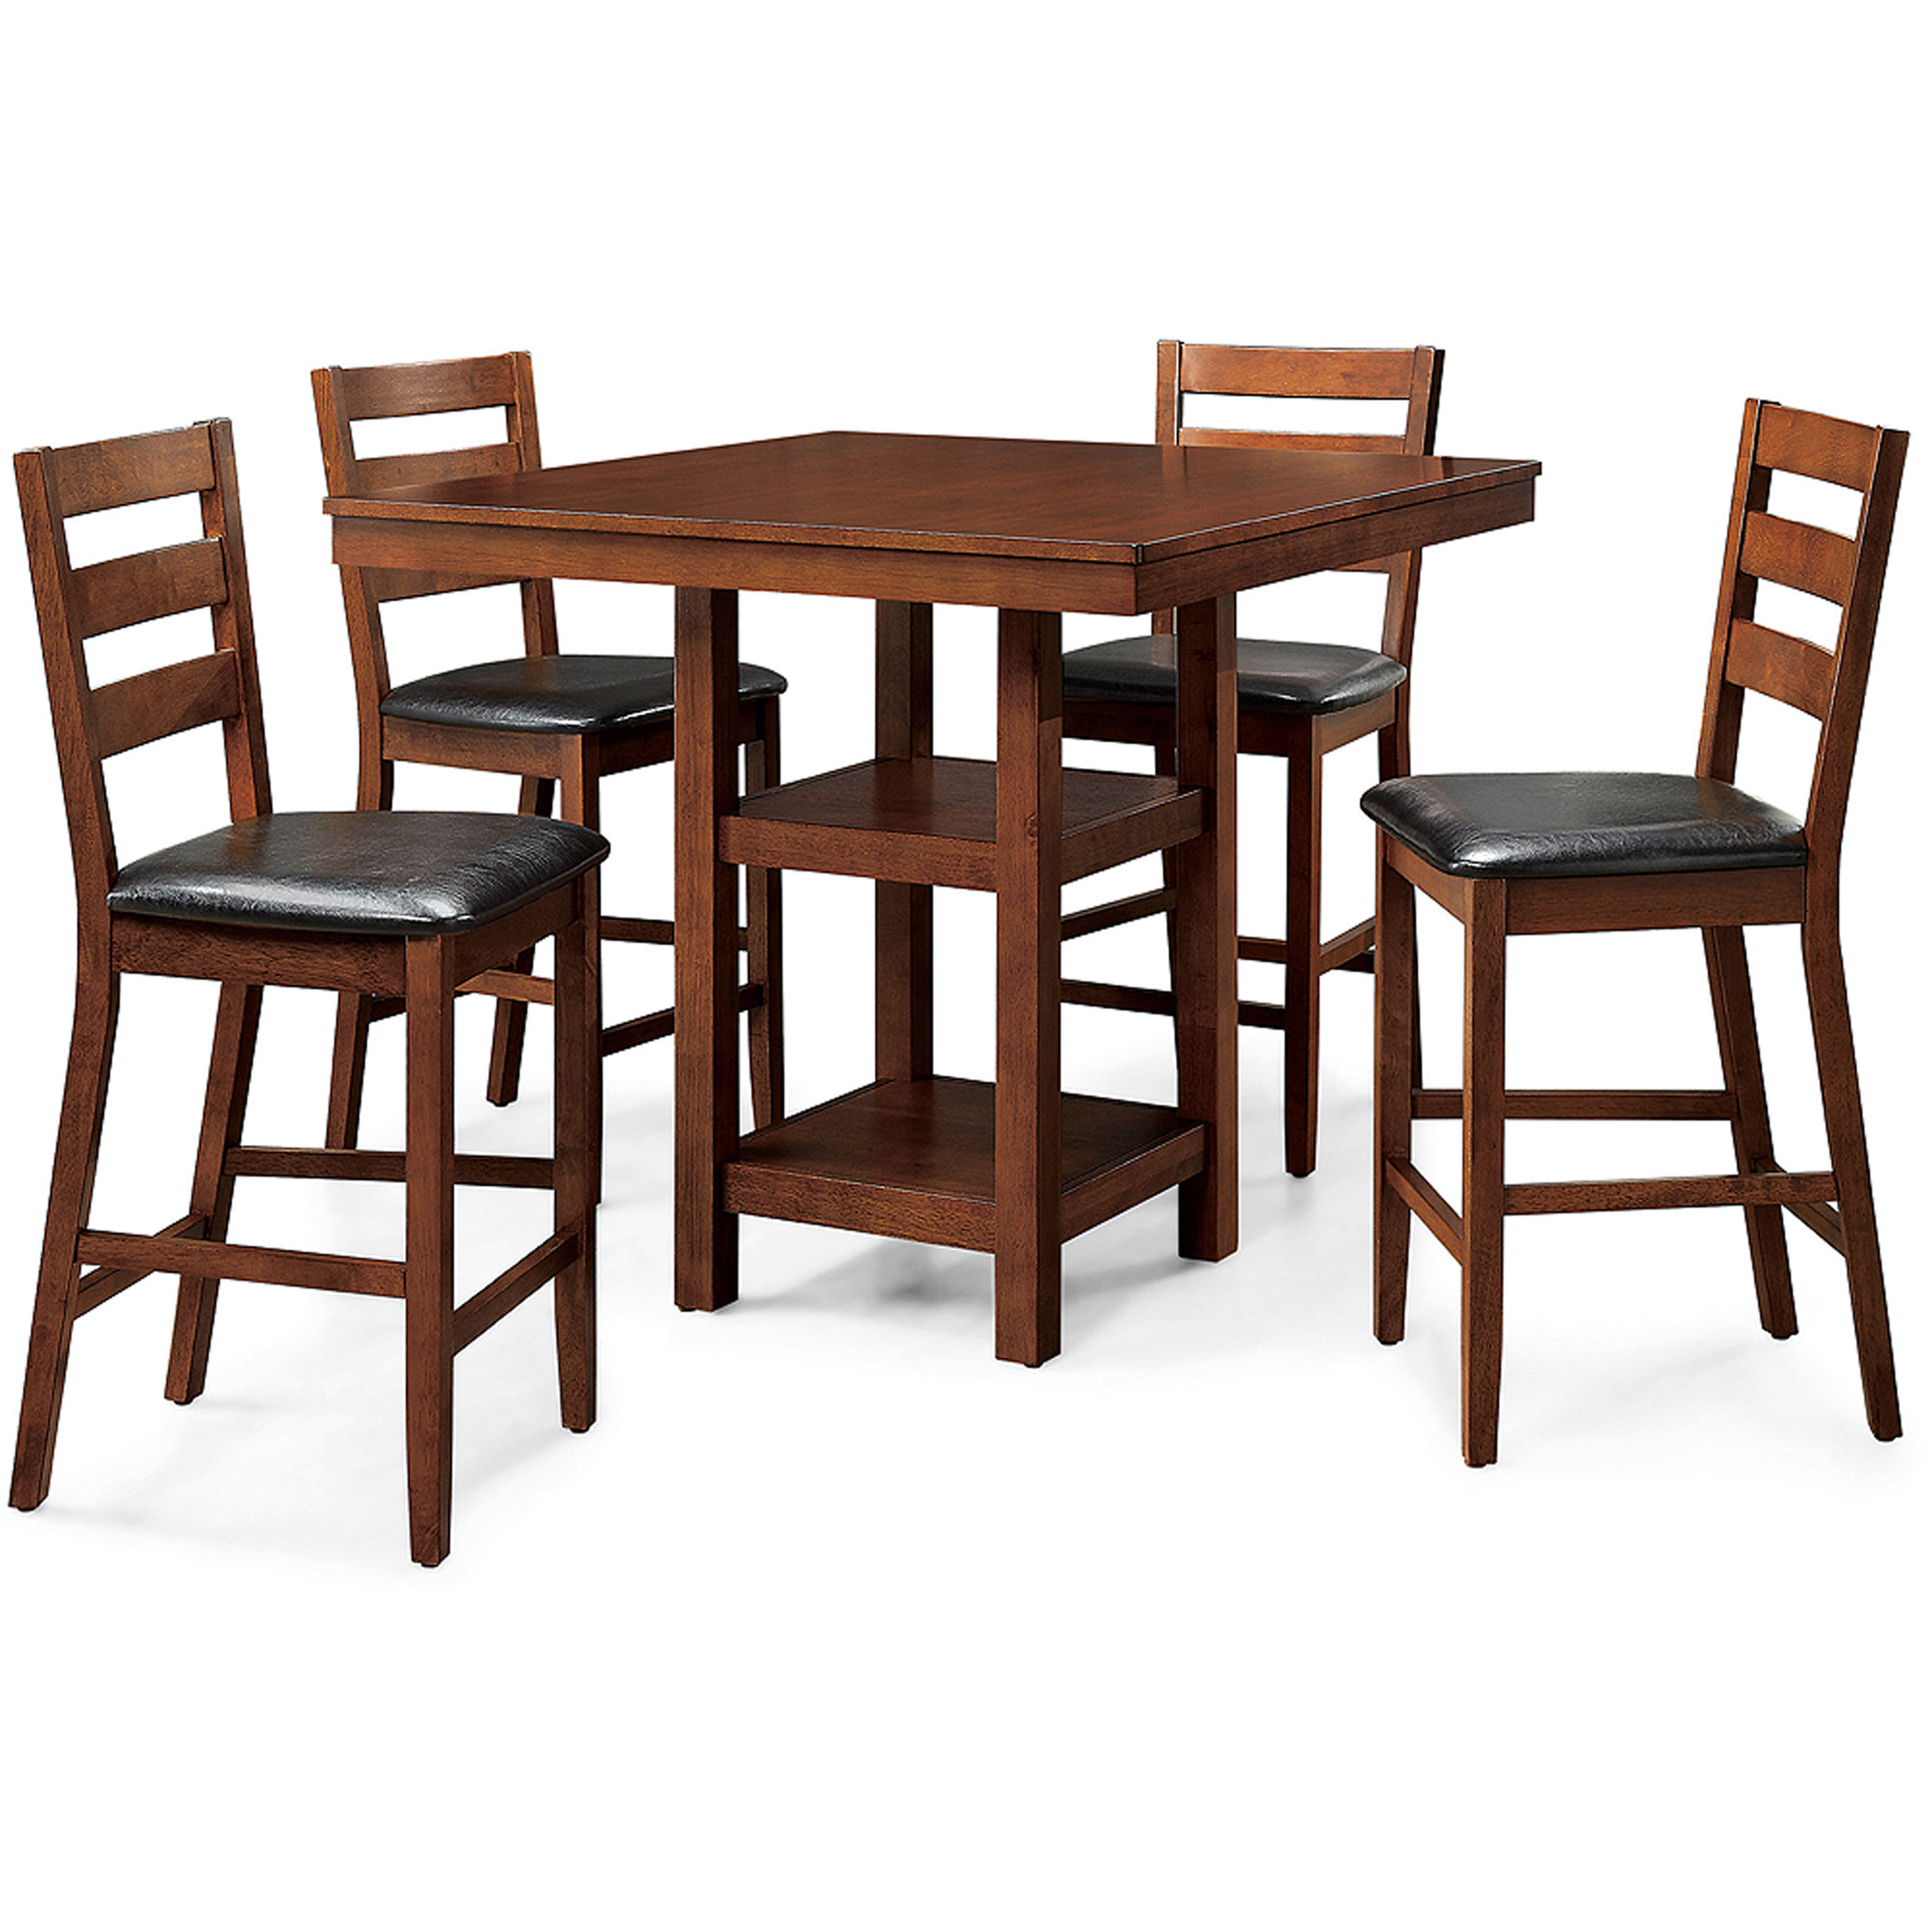 Better Homes U0026 Gardens Dalton Park 5 Piece Counter Height Dining Set,  Includes Table And Four Chairs, Mocha Finish   Walmart.com